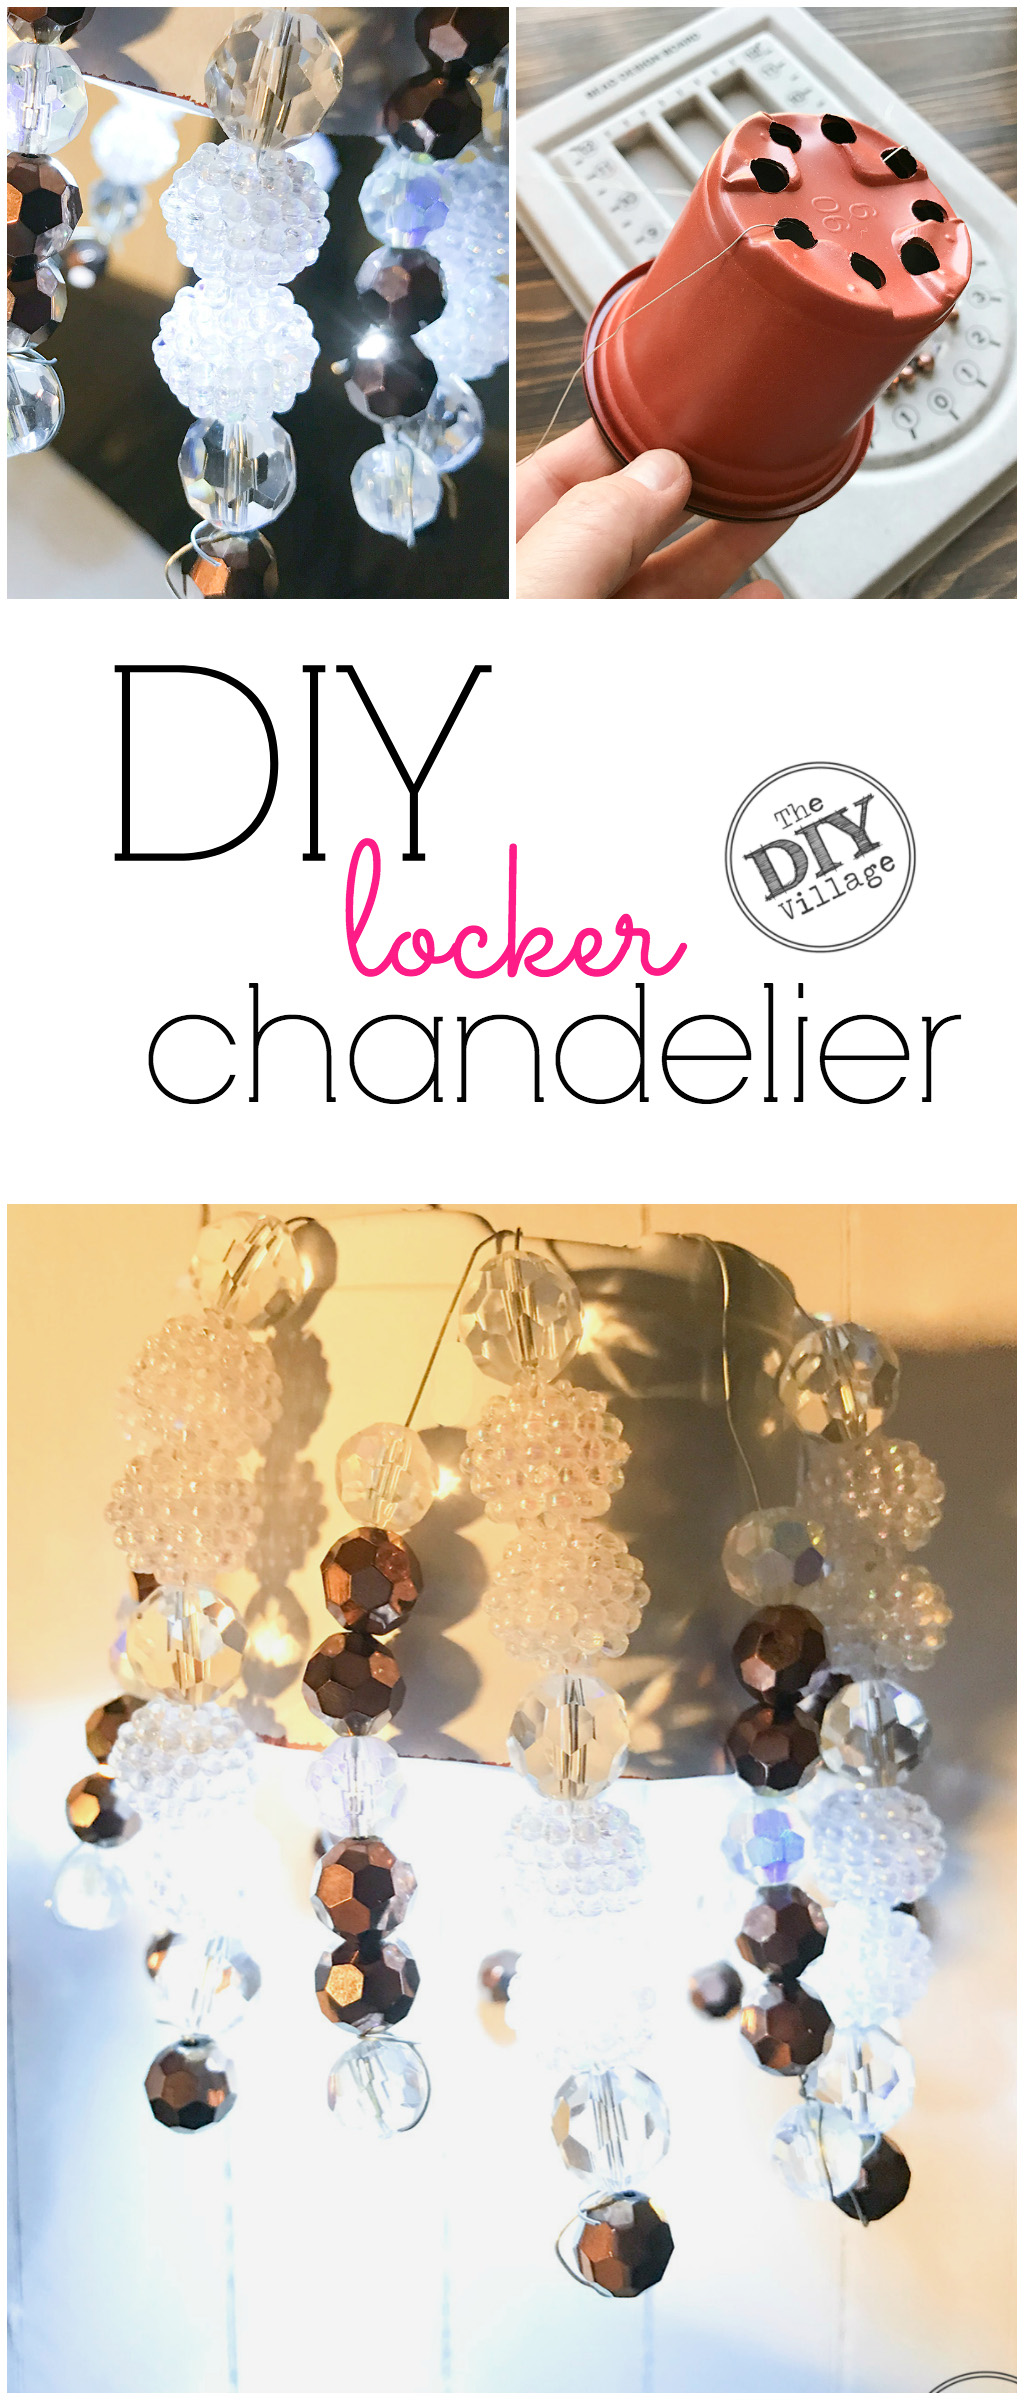 What's the fun in having a locker if you don't bling it out. Follow this fast and easy tutorial and learn how to make your own DIY locker chandelier.